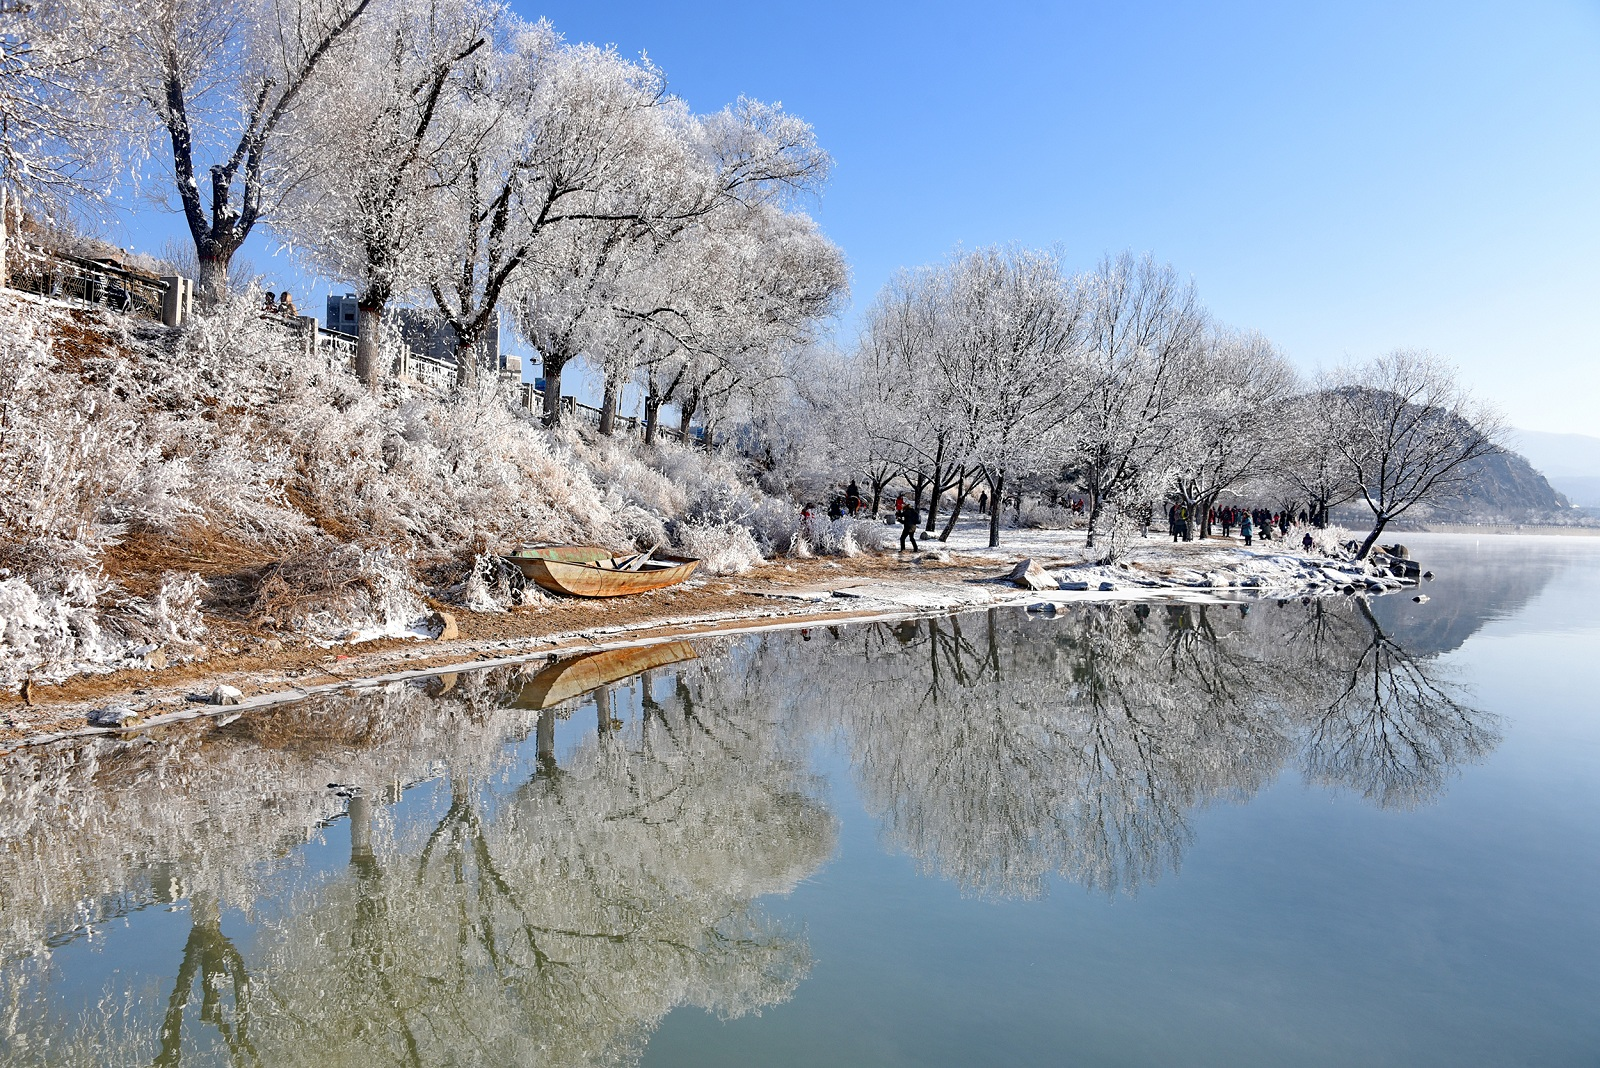 Winter wonderland in Jilin